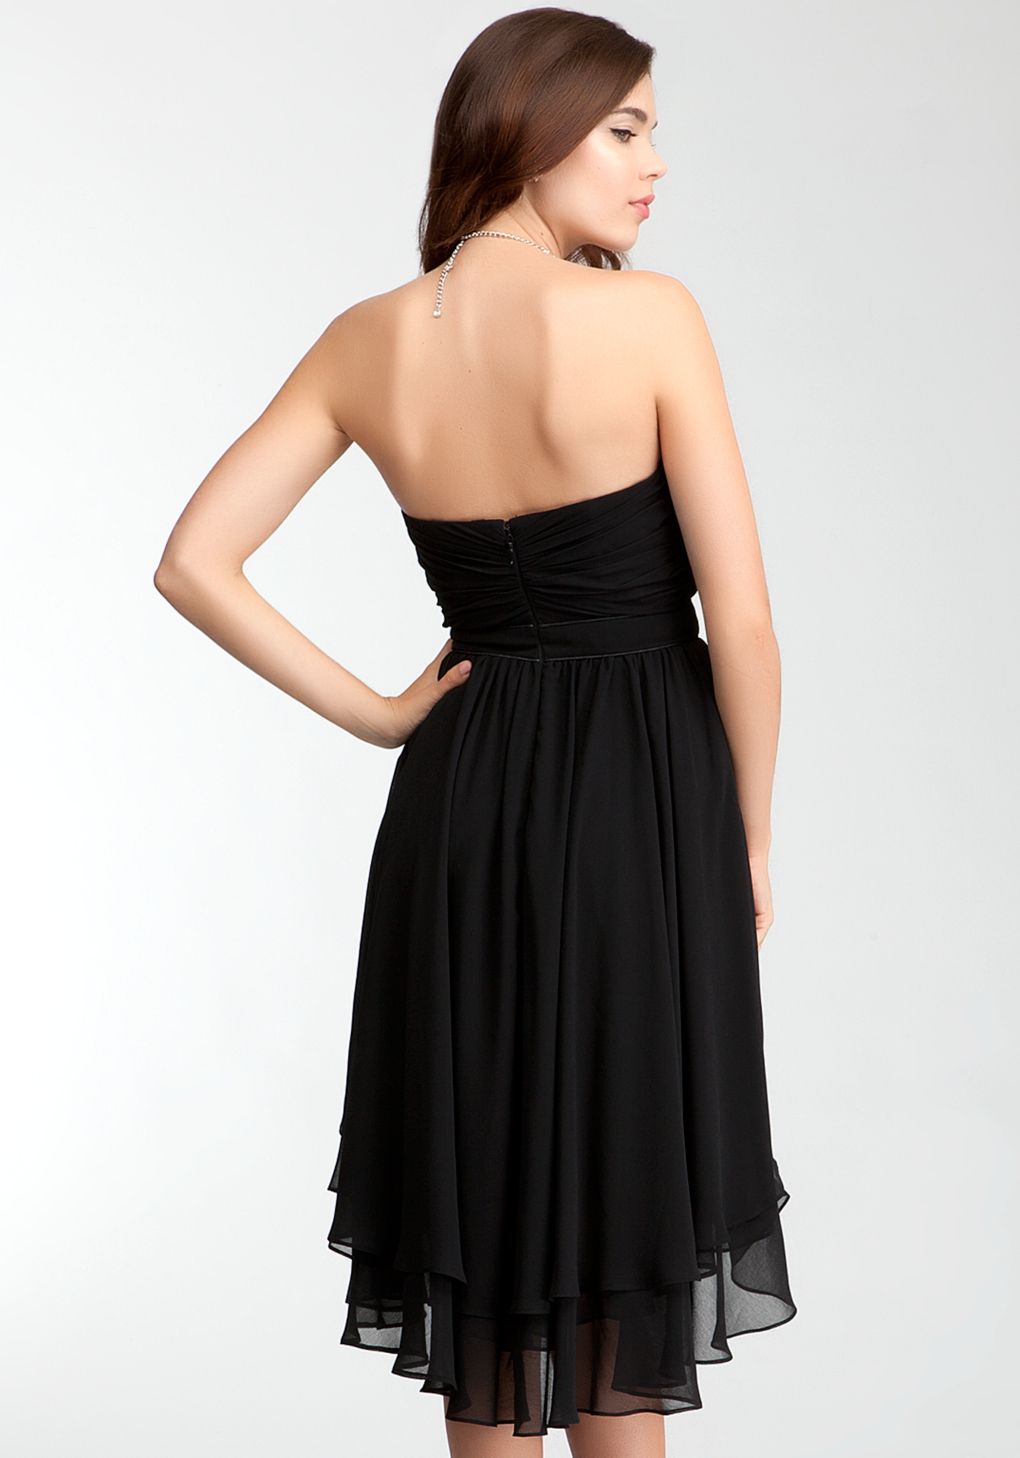 Bebe pleated strapless layer skirt dress rami kashou in black lyst gallery ombrellifo Images